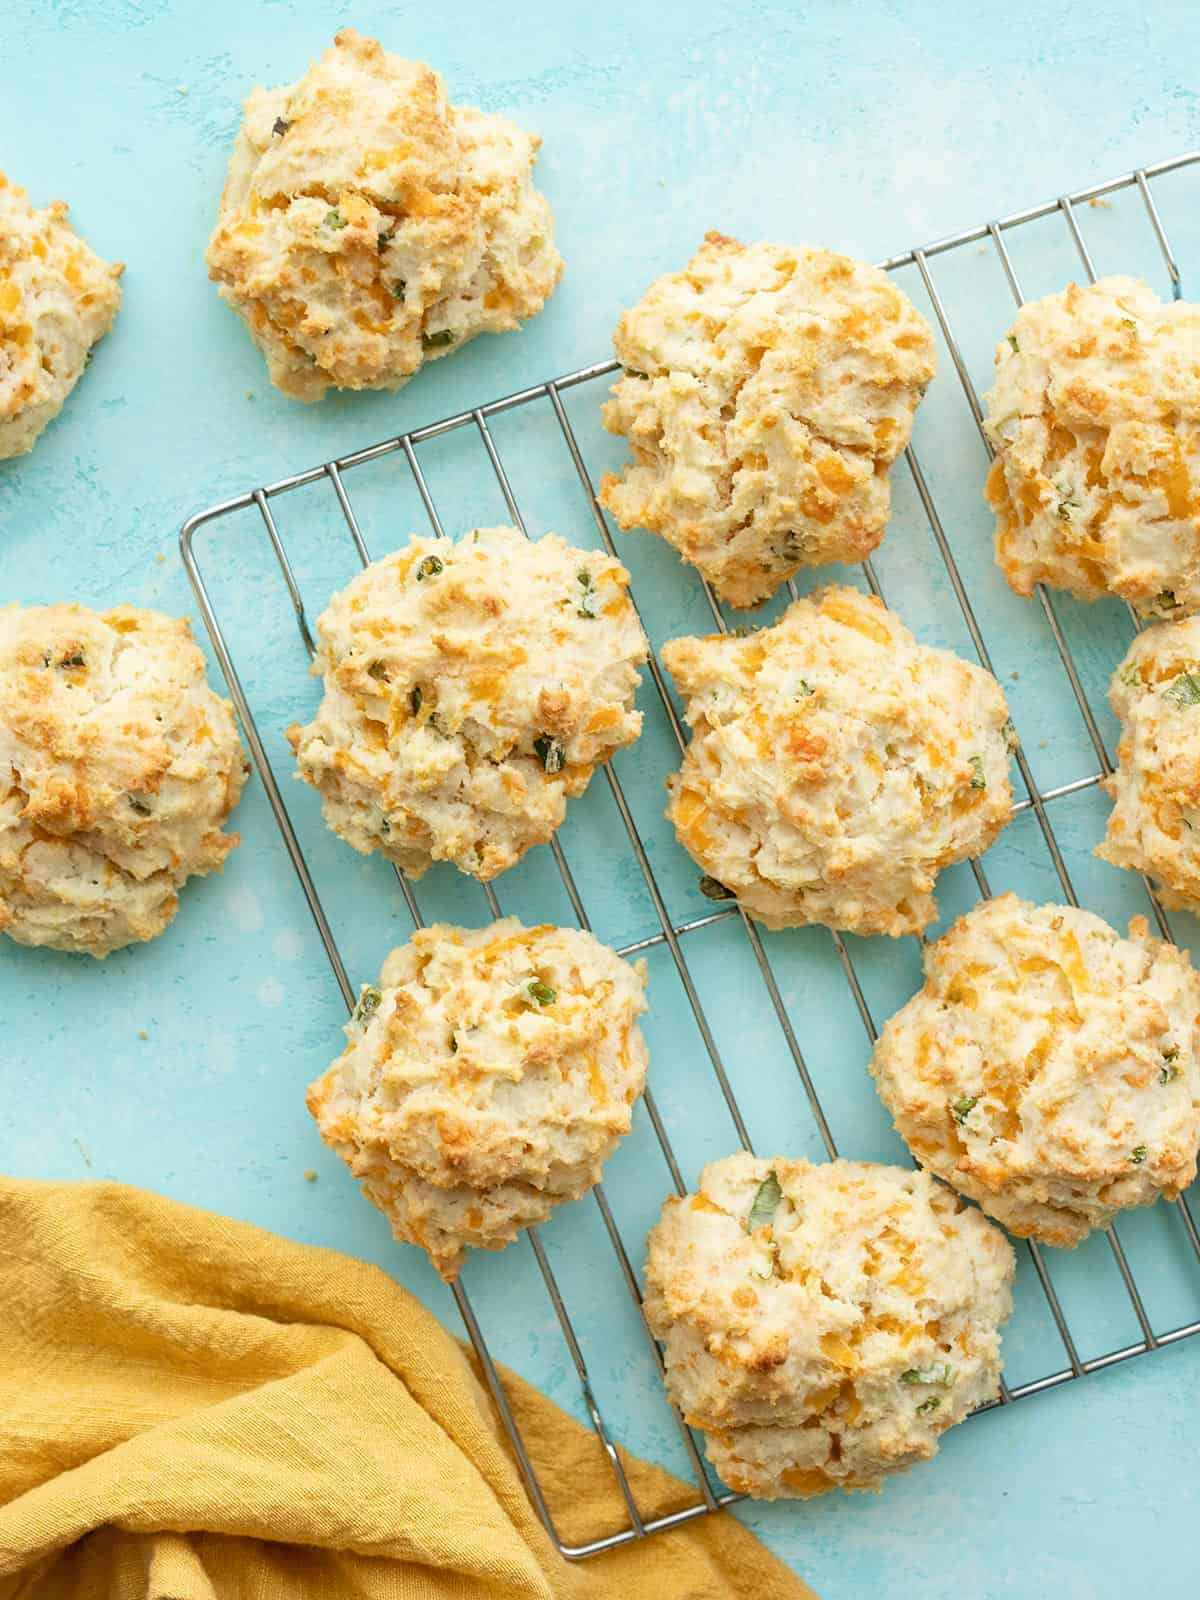 Cheddar drop biscuits on a wire cooling rack, on a blue surface